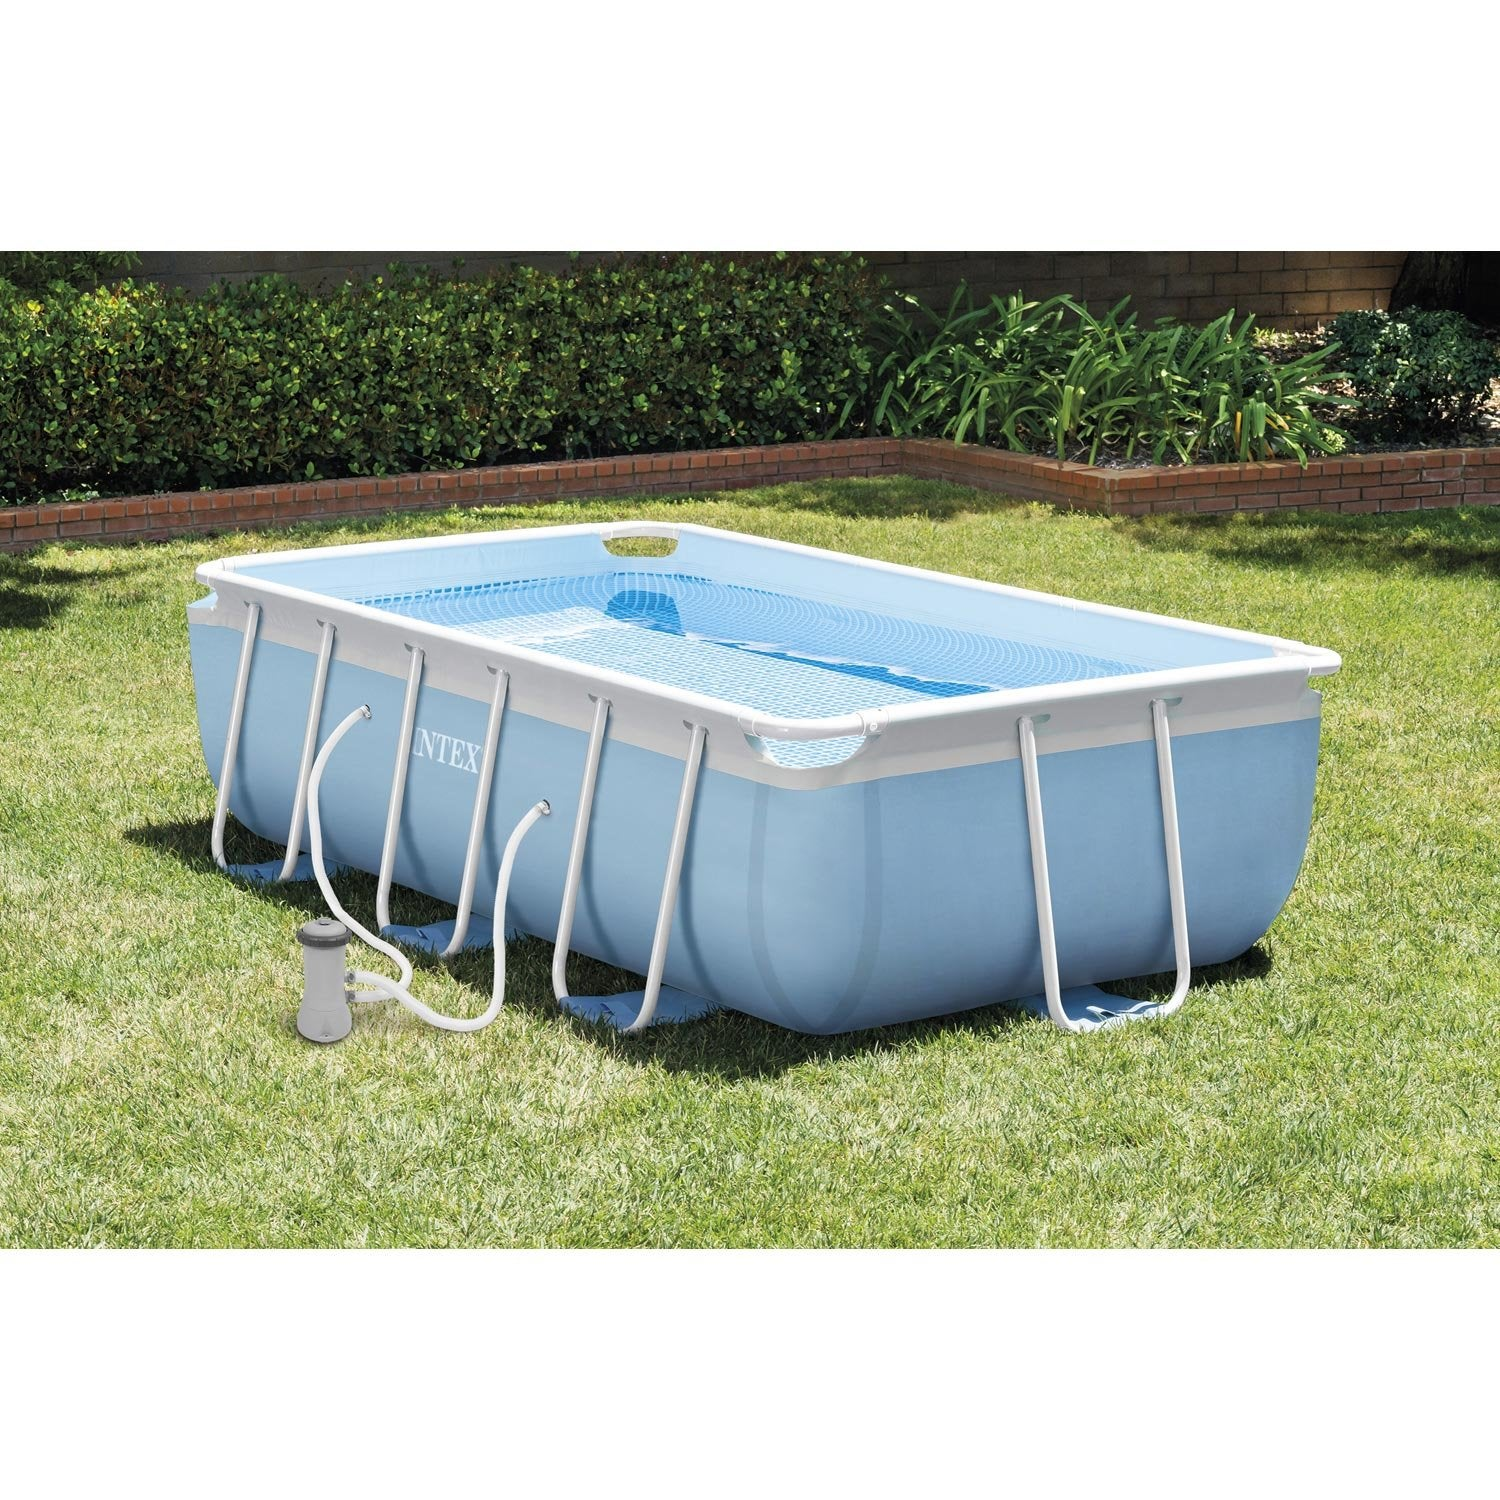 Piscine hors sol autoportante tubulaire intex l 3 4 x l 2 for Dimension piscine